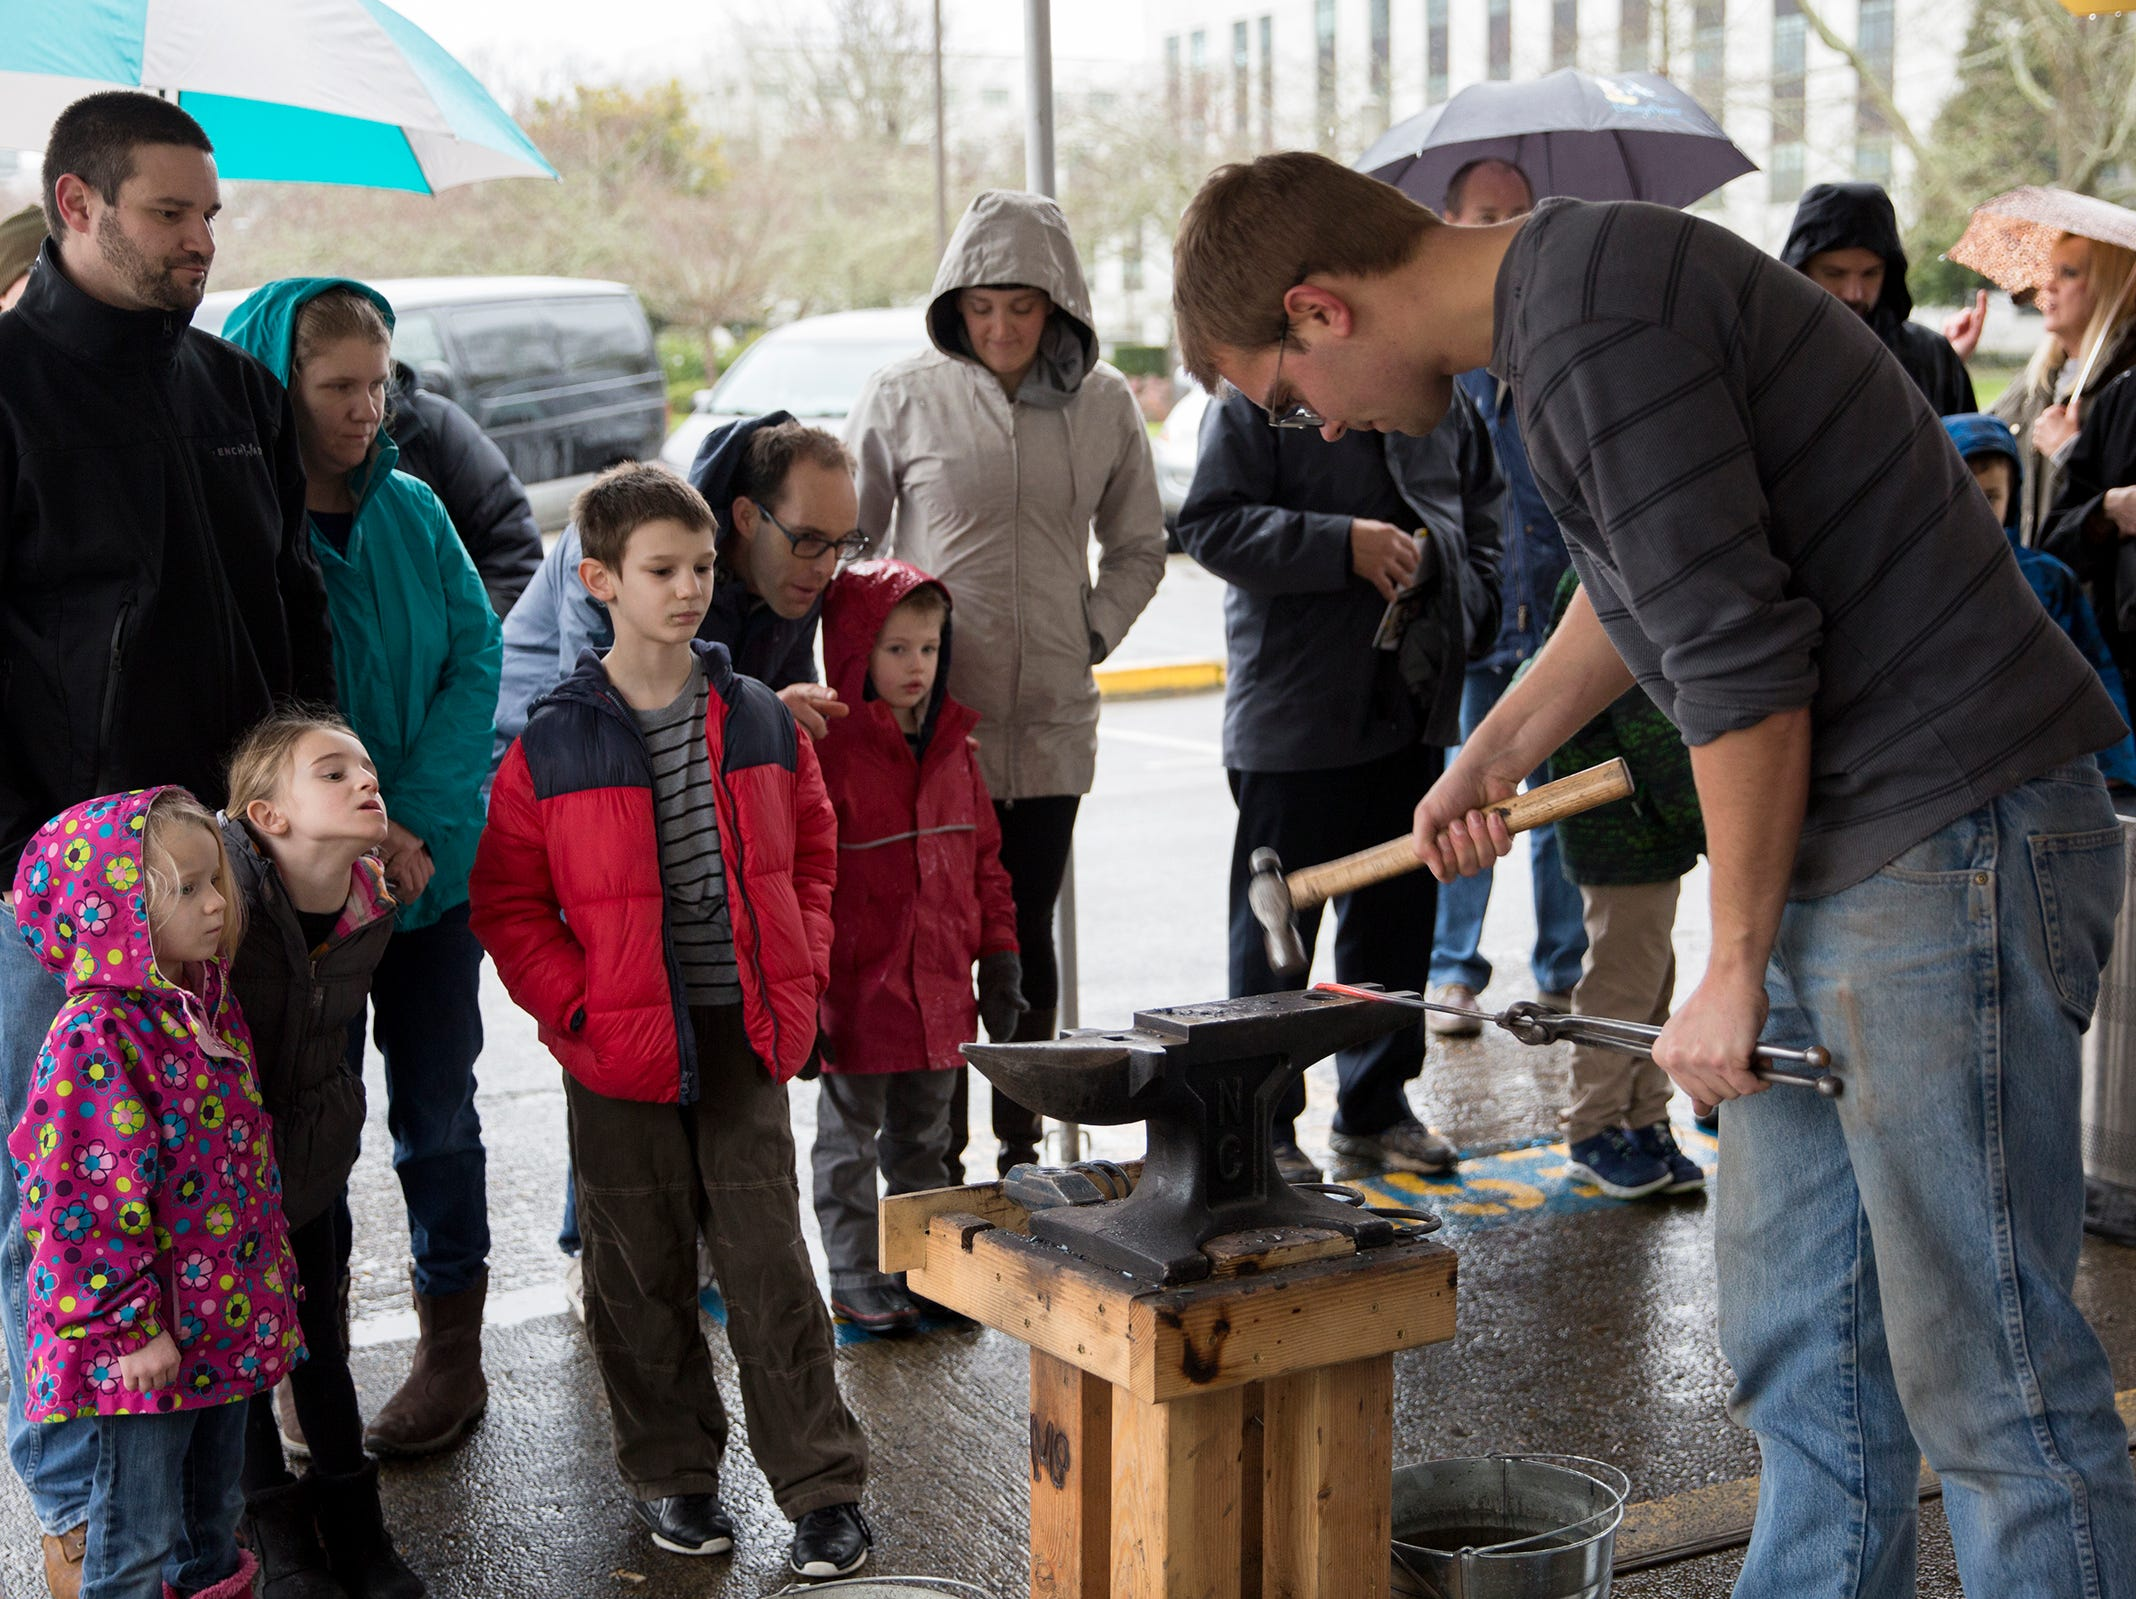 Anvil Academy blacksmith assistant Erik Keyser gives a demonstration of the program that teaches young adults woodworking and blacksmithing during Oregon's 160th Birthday Celebration at the Oregon State Capitol in Salem on Saturday, Feb. 16, 2019.